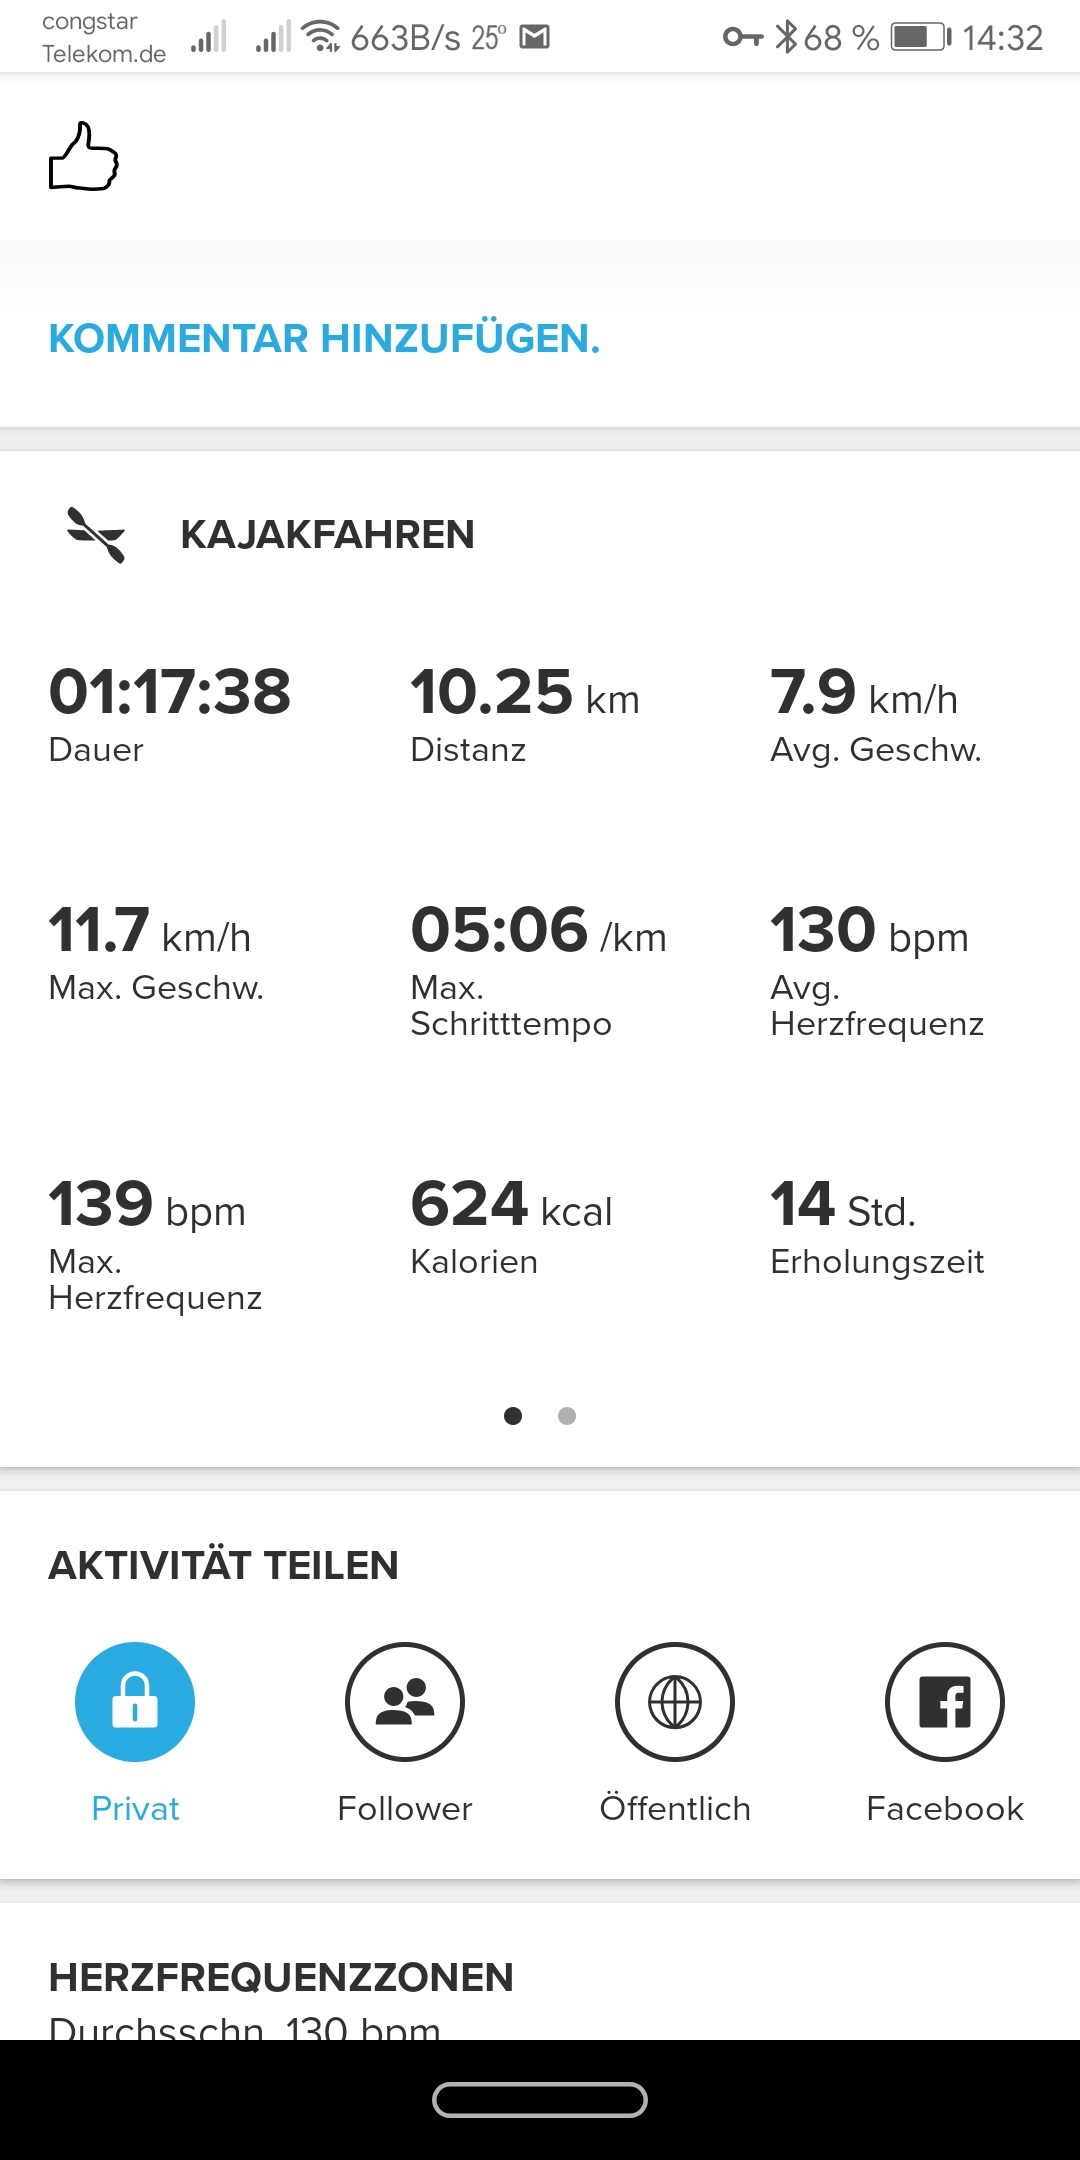 Screenshot_20190701_143225_com.stt.android.suunto.jpg